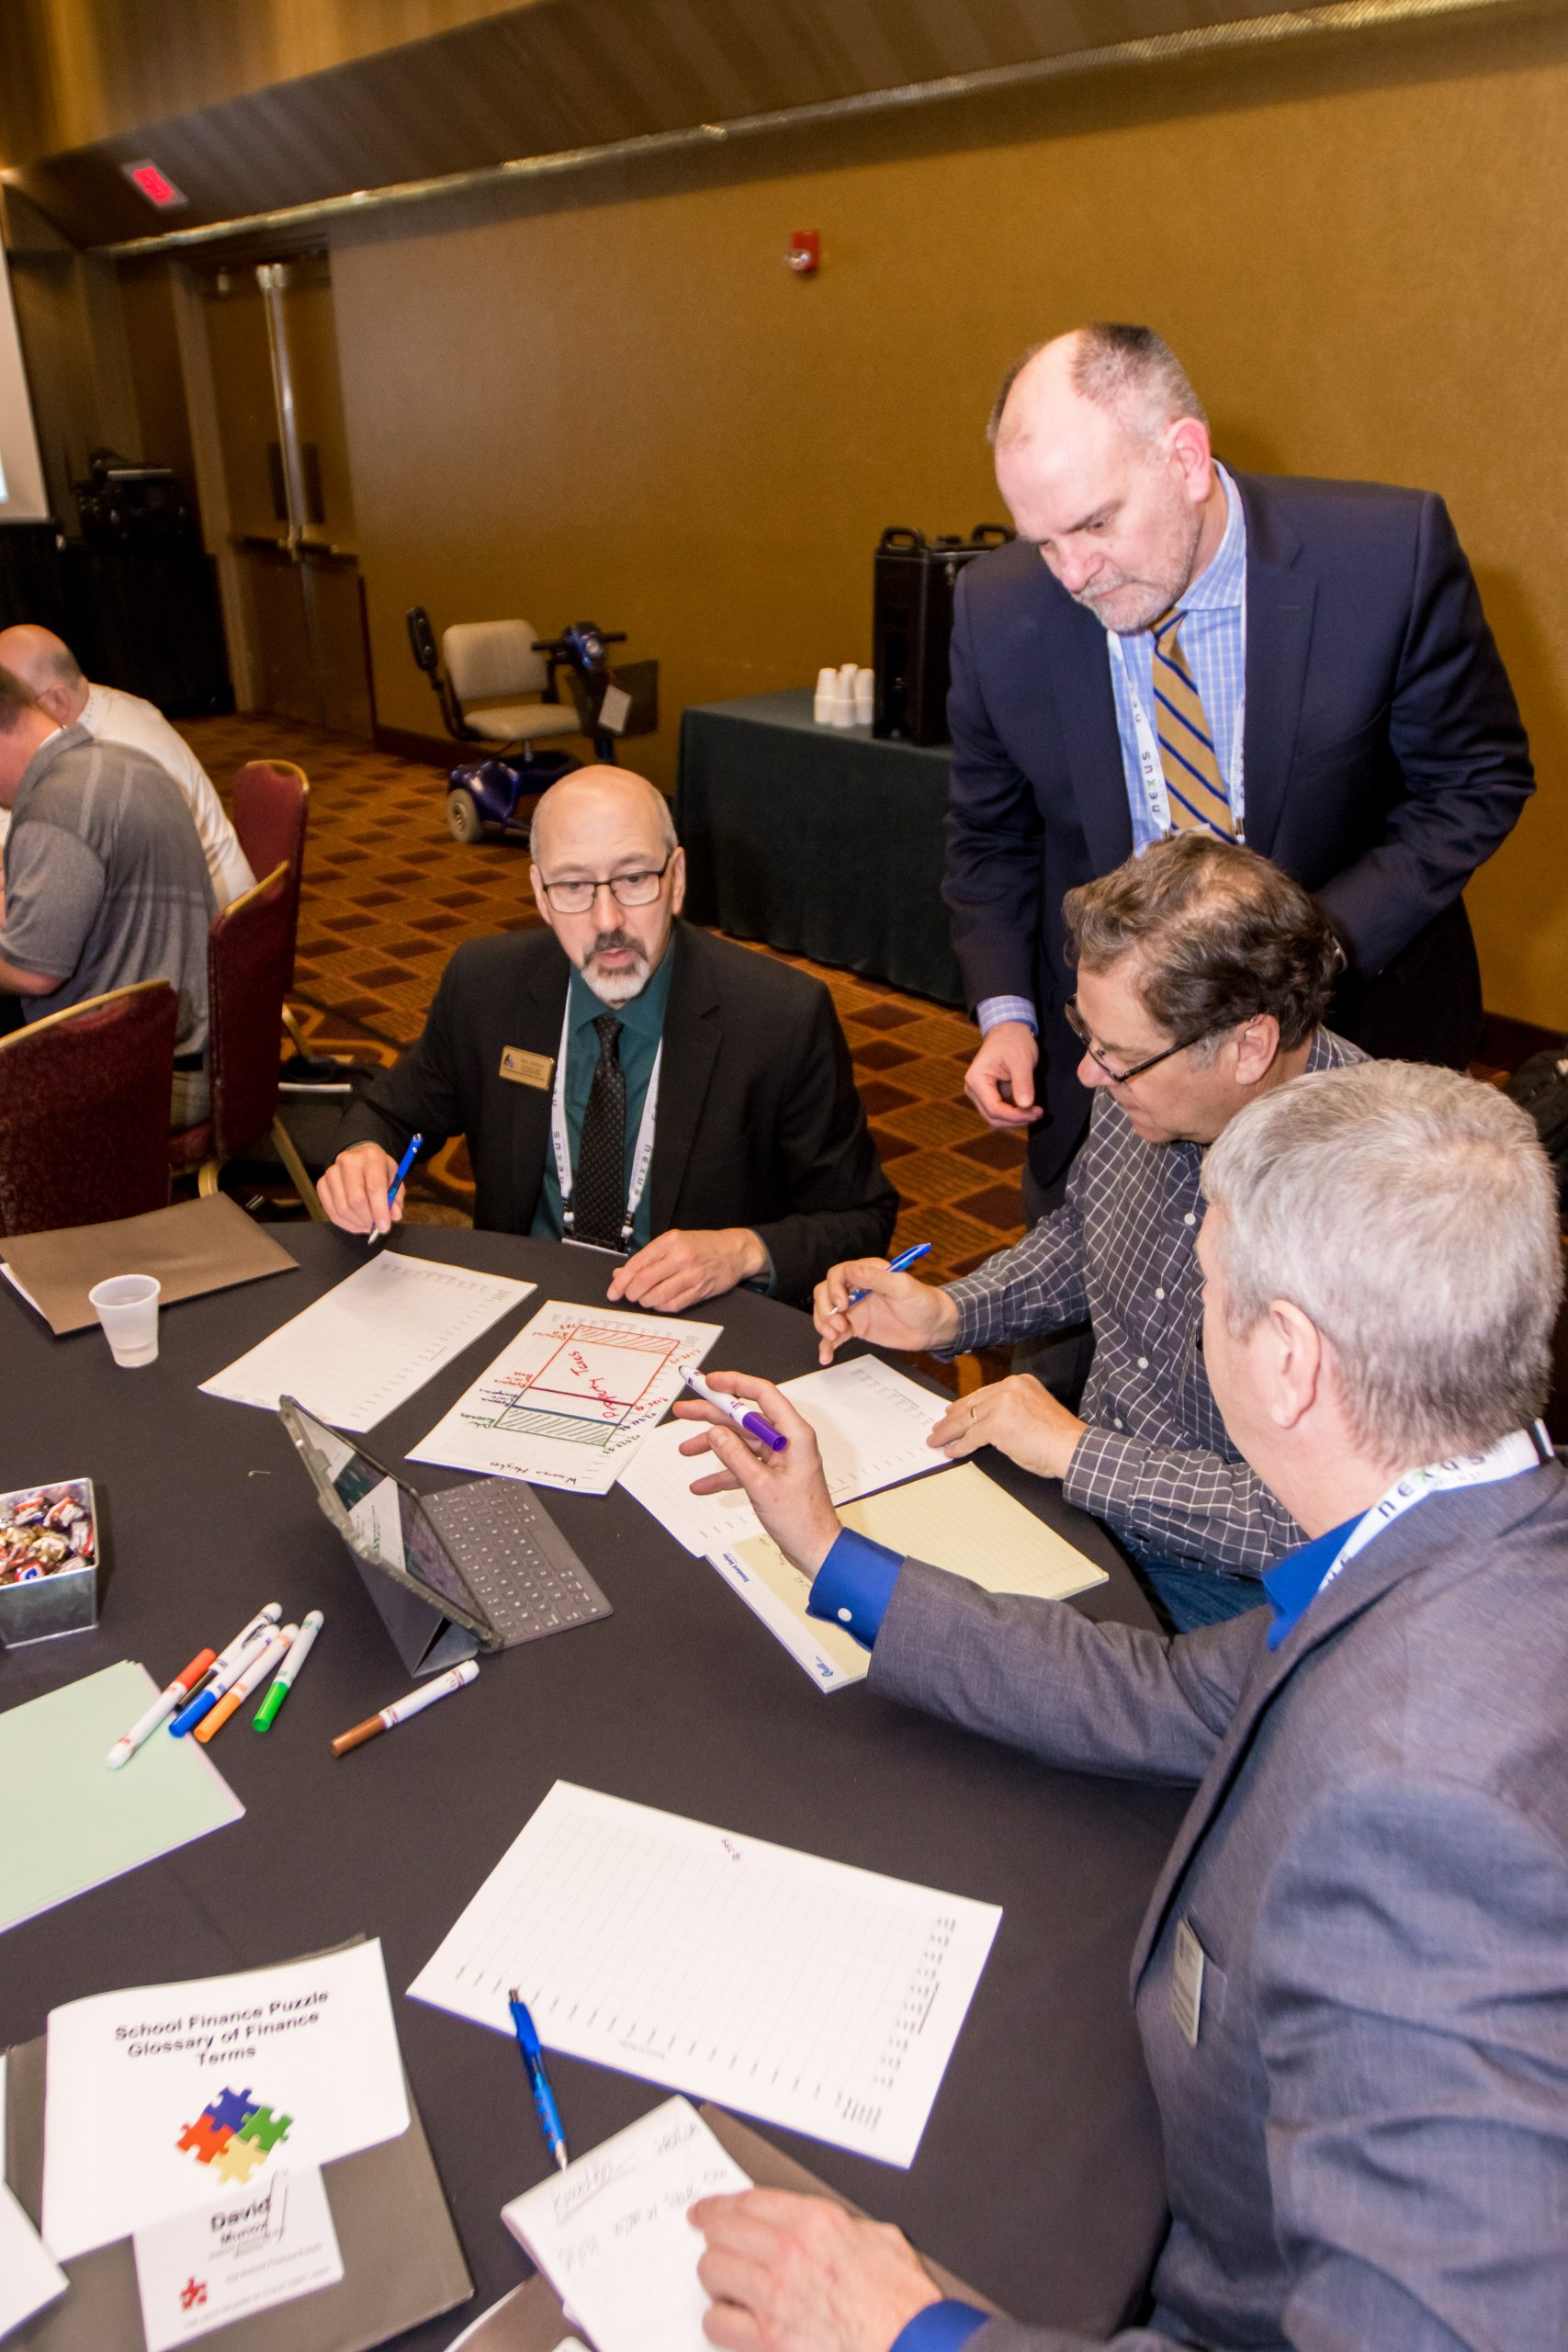 Attendees of a pre-convention workshop conduct an activity.